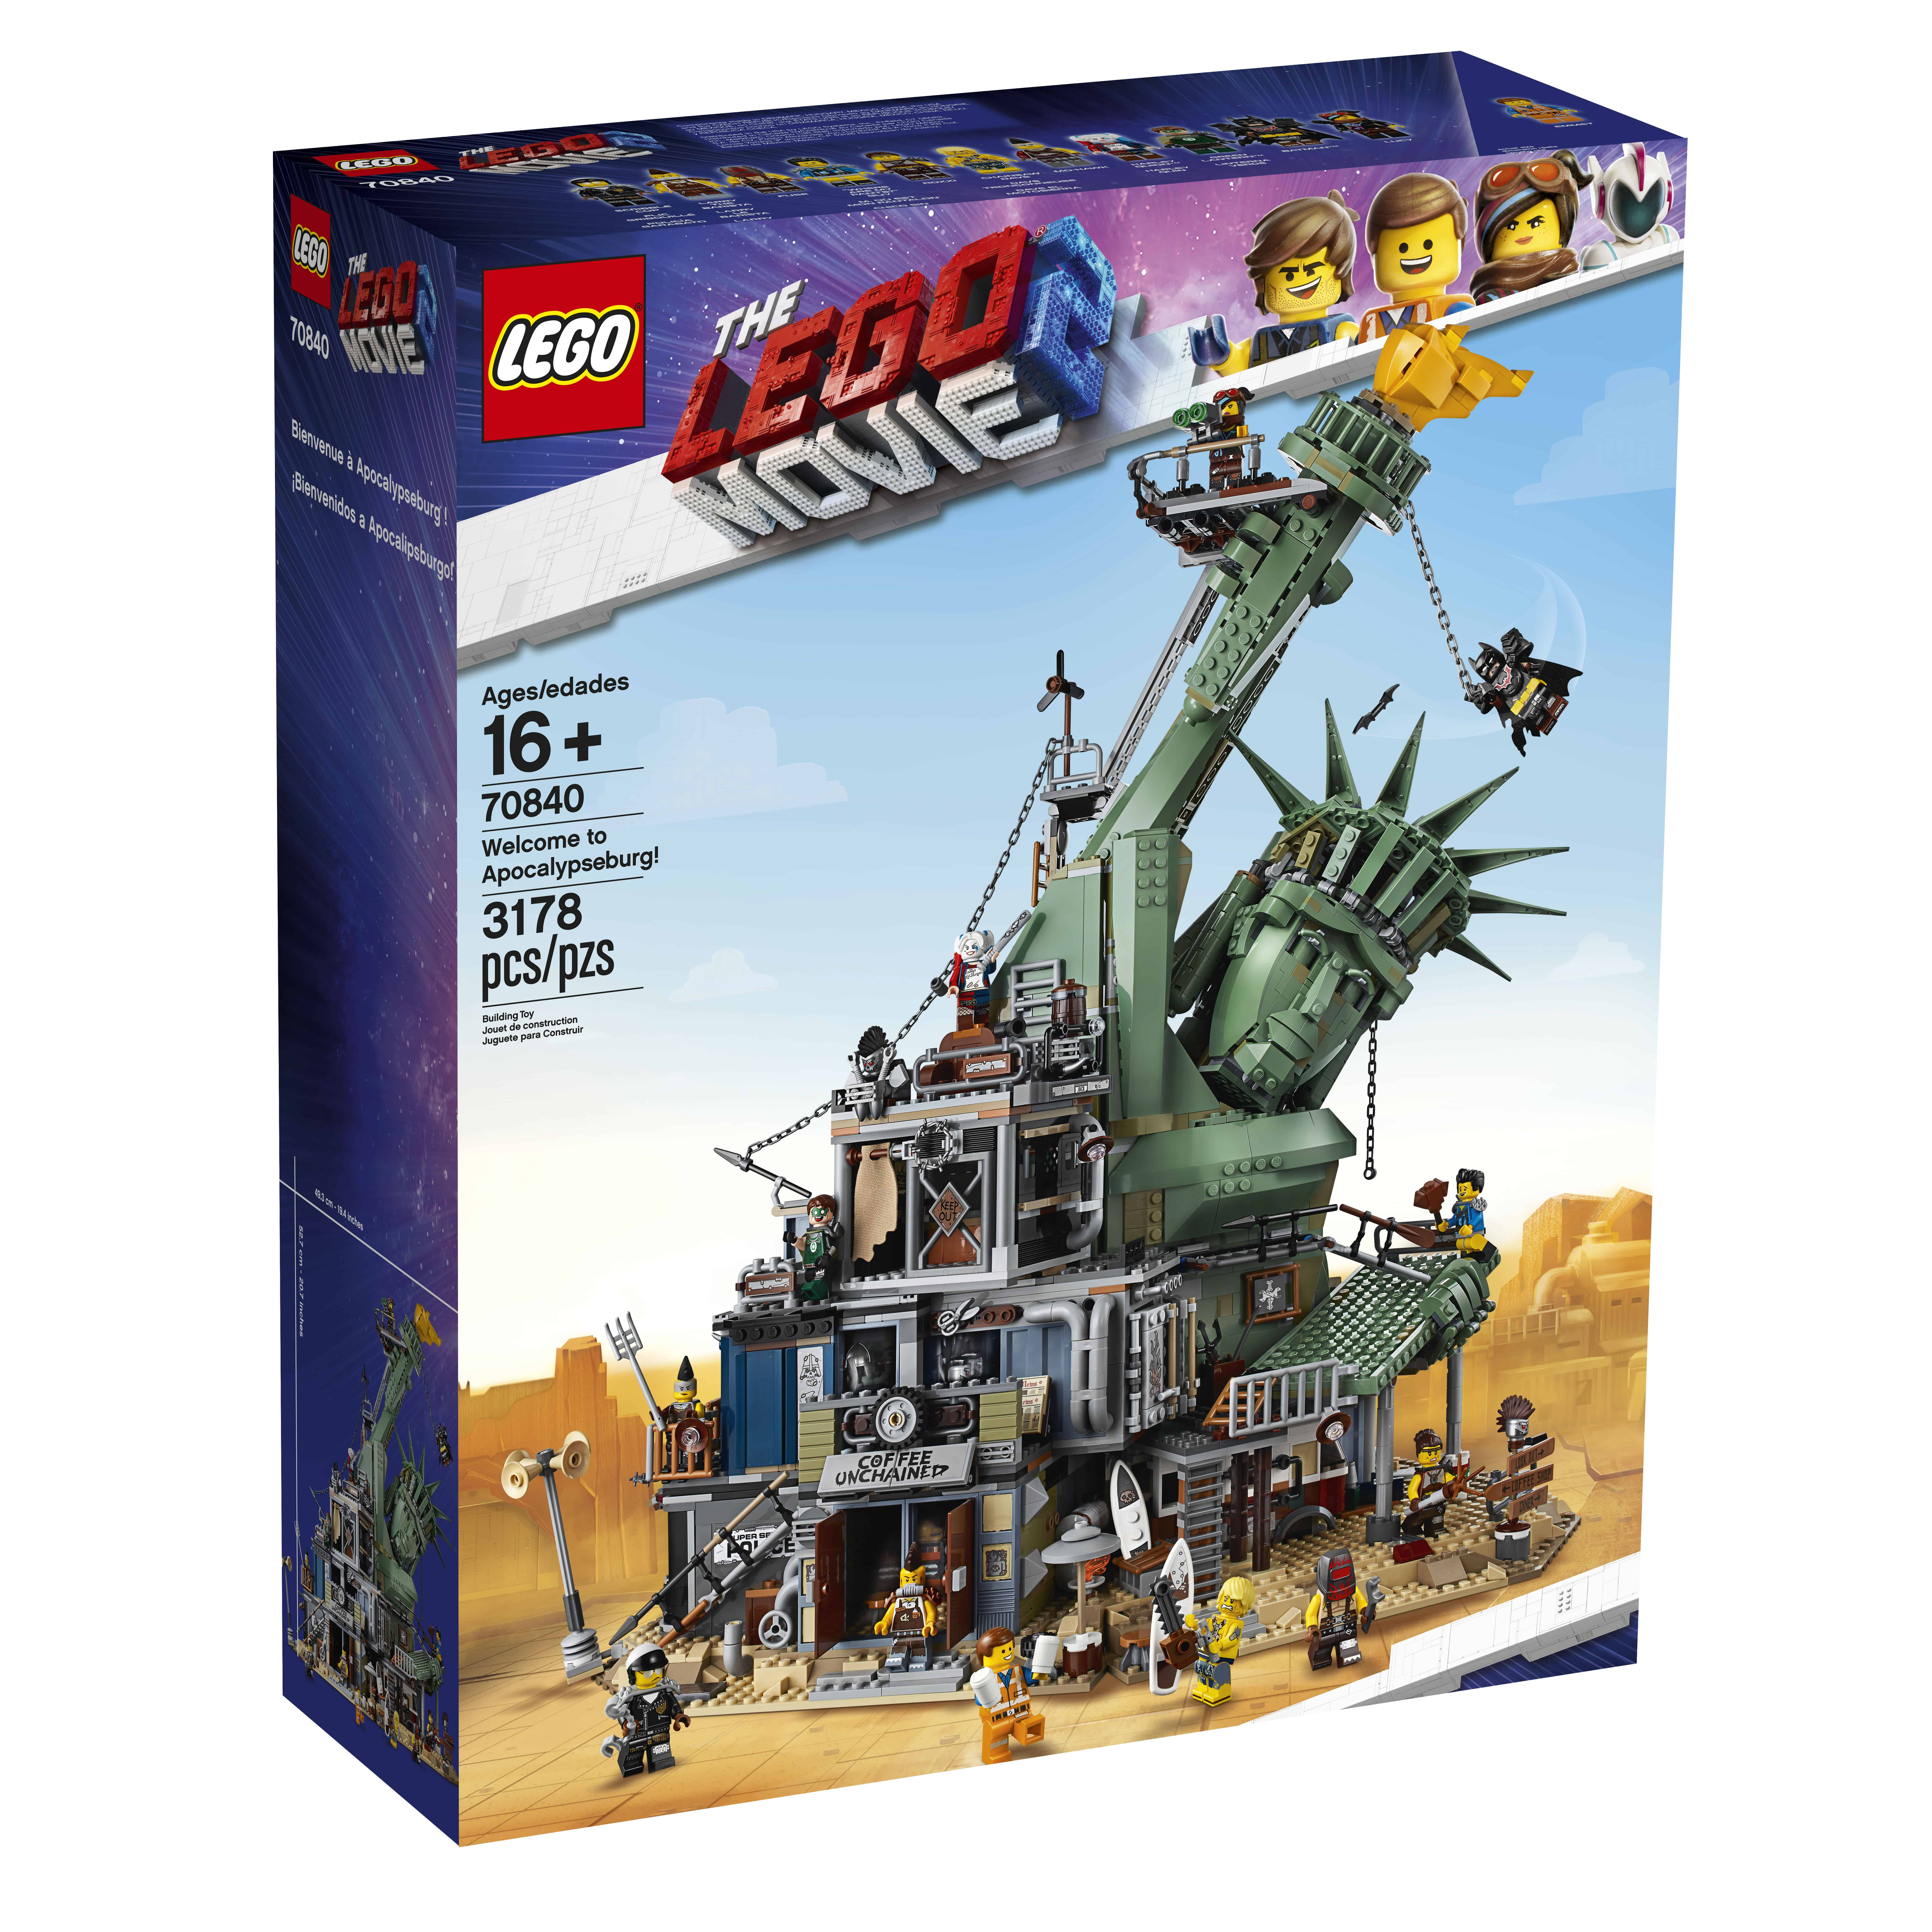 LEGO Unveils Huge LEGO Movie 2 Welcome to Apocalypseburg Set